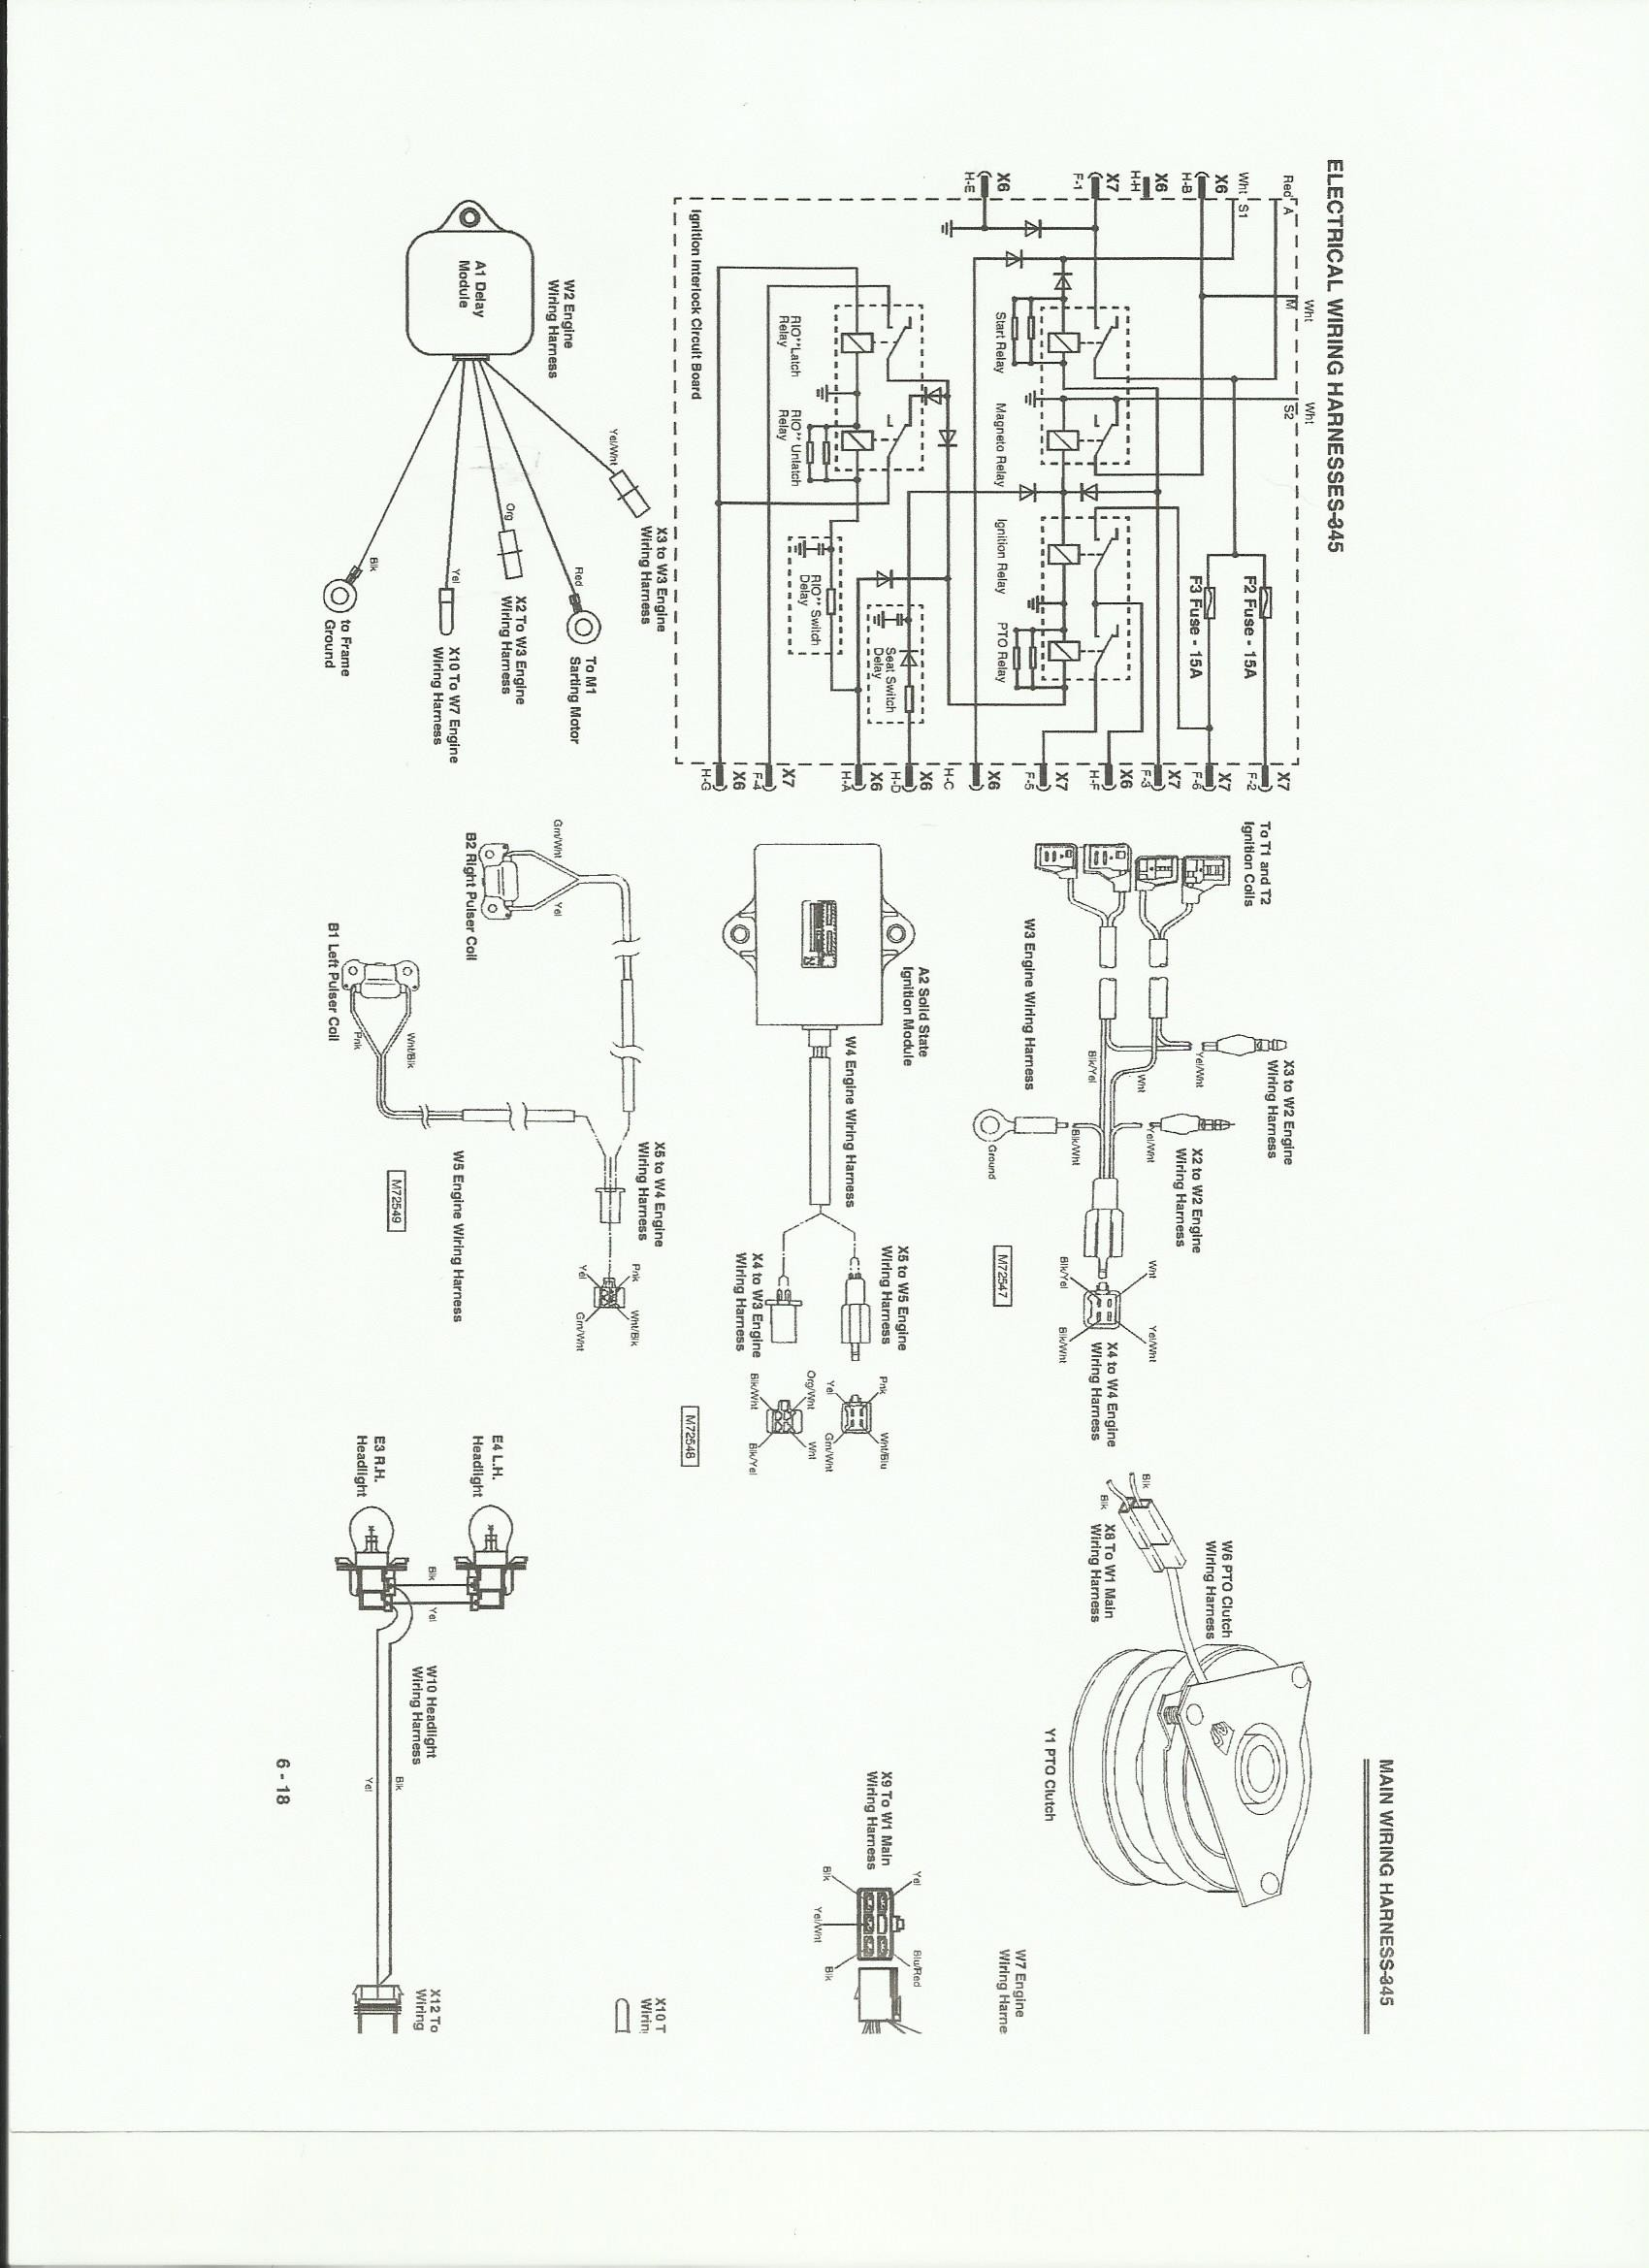 Wiring Diagram for A Water Cooled Gx345 John Deer Lawn Mower Need A 345 Wiring Diagram Pdf Please Mytractorforum the Friendliest Tractor forum and